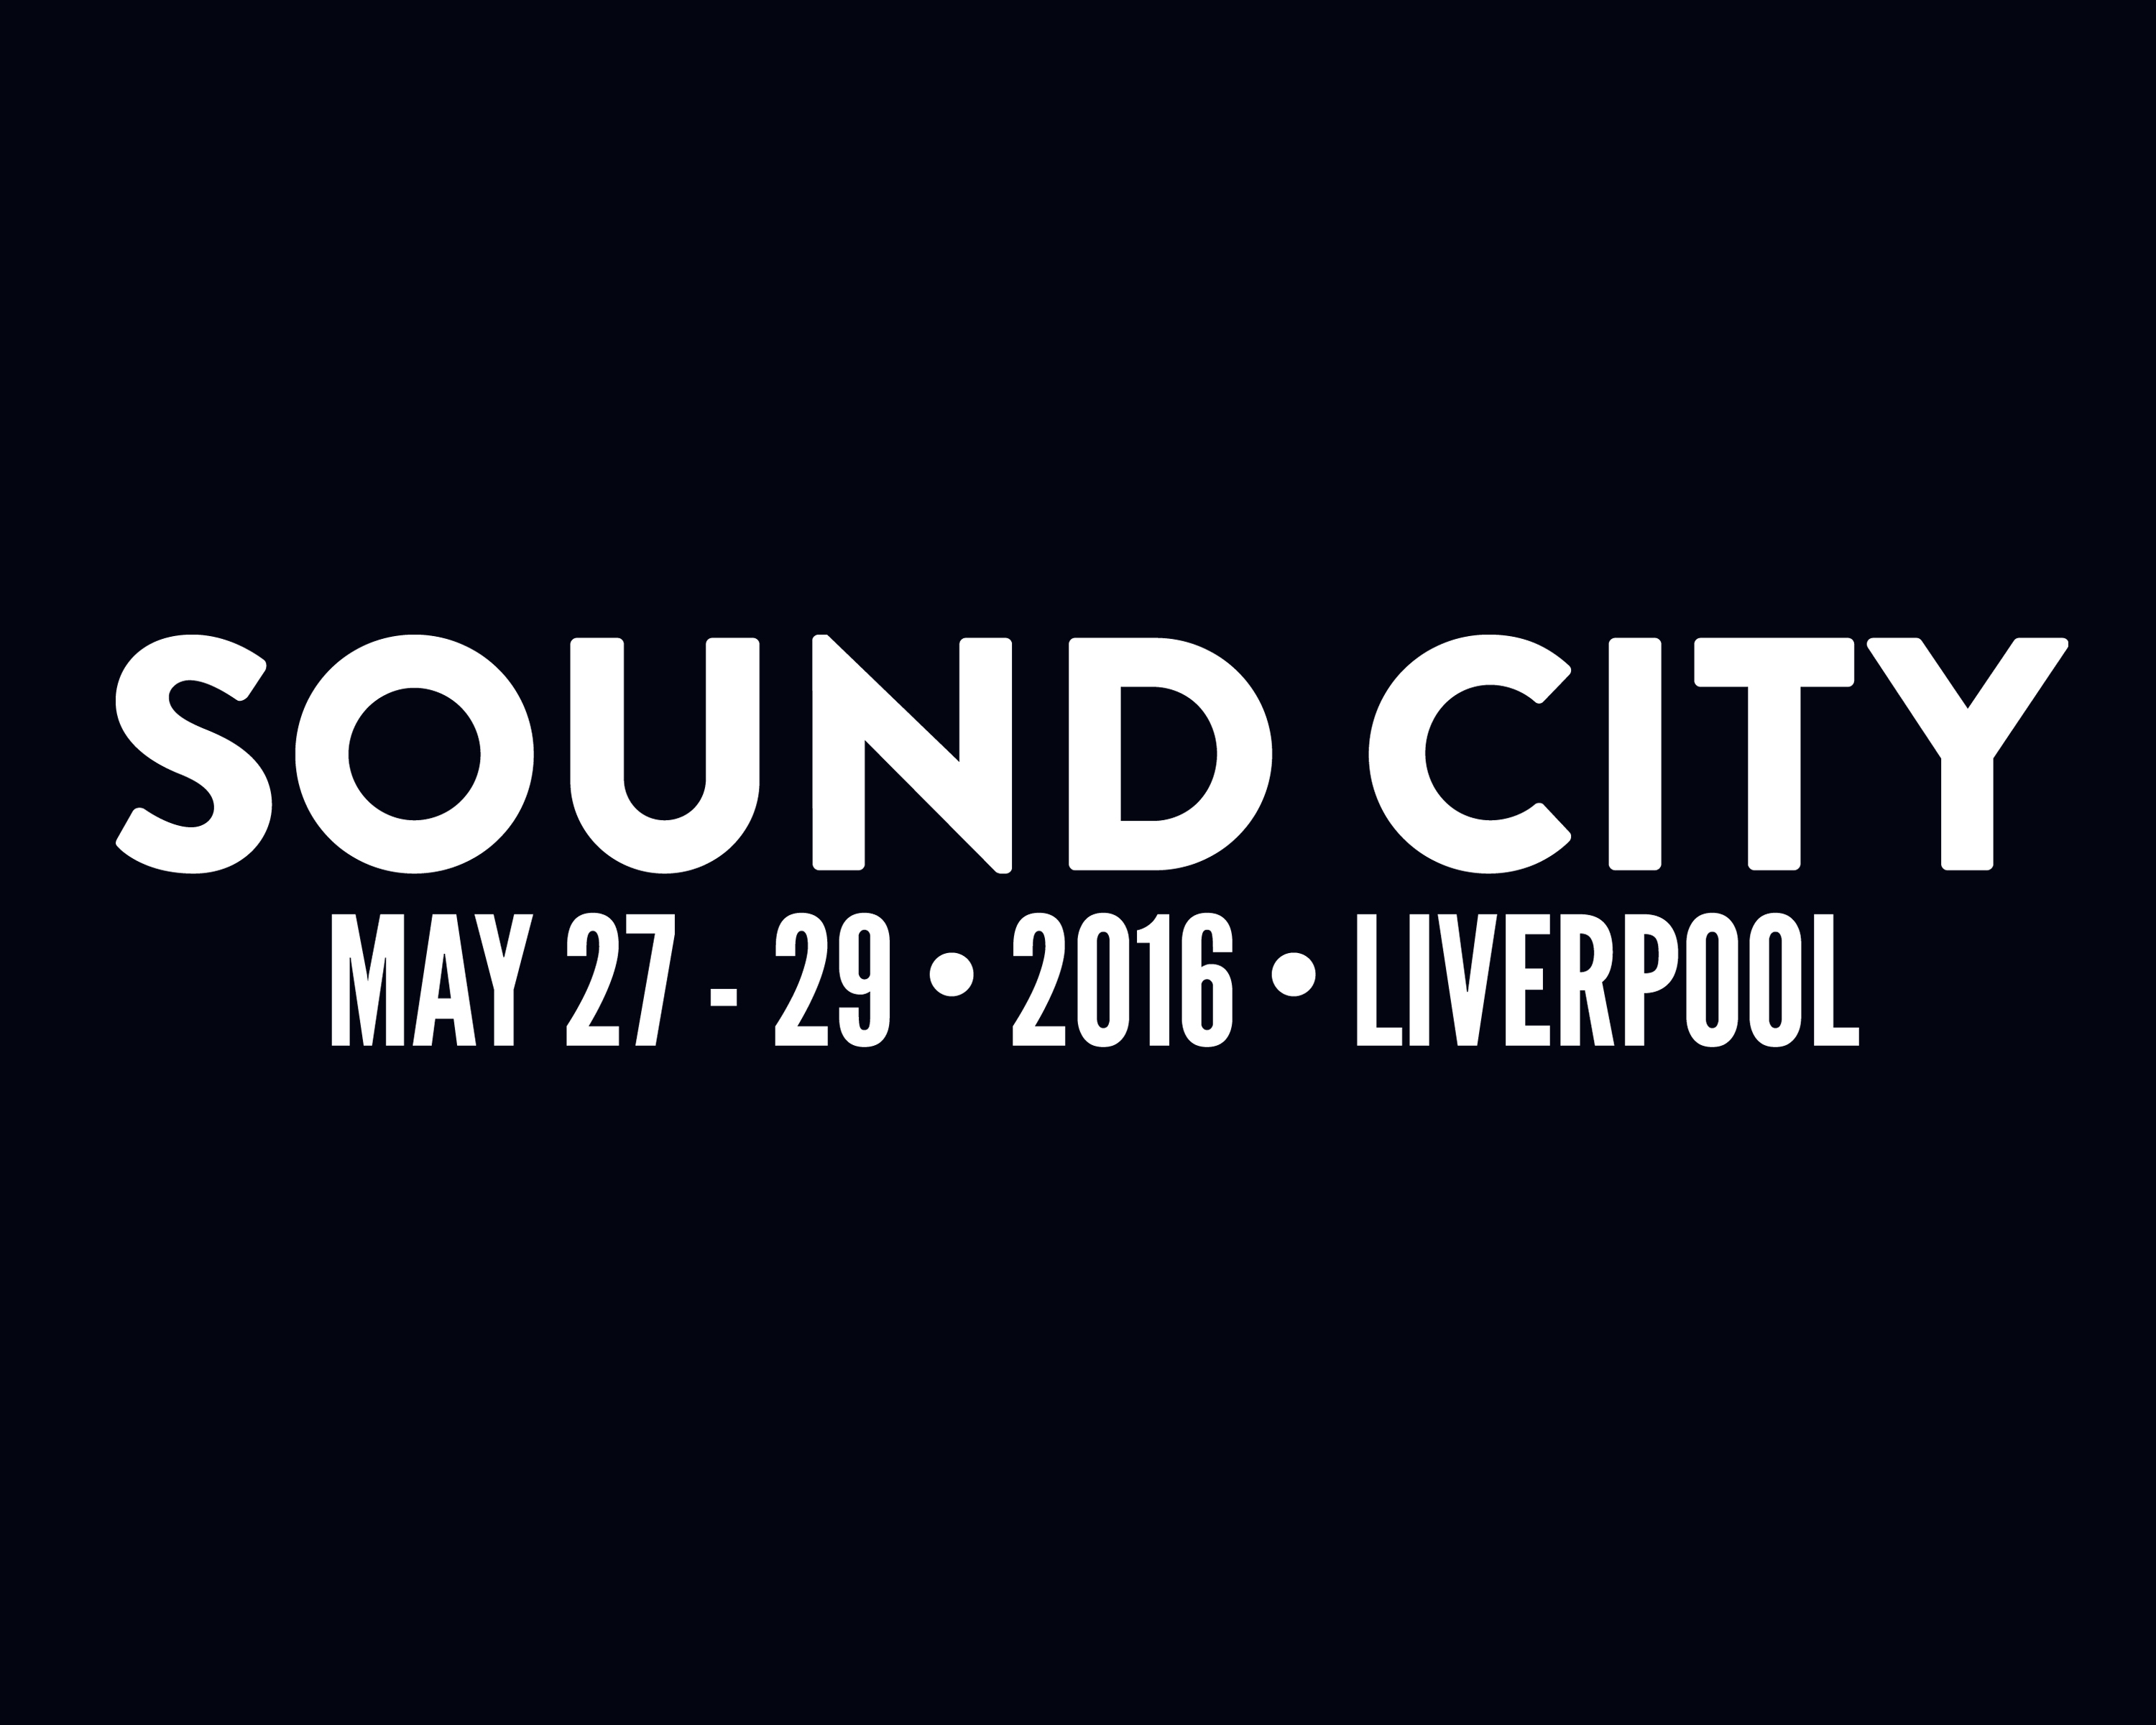 Liverpool Sound City: 10 Acts To See